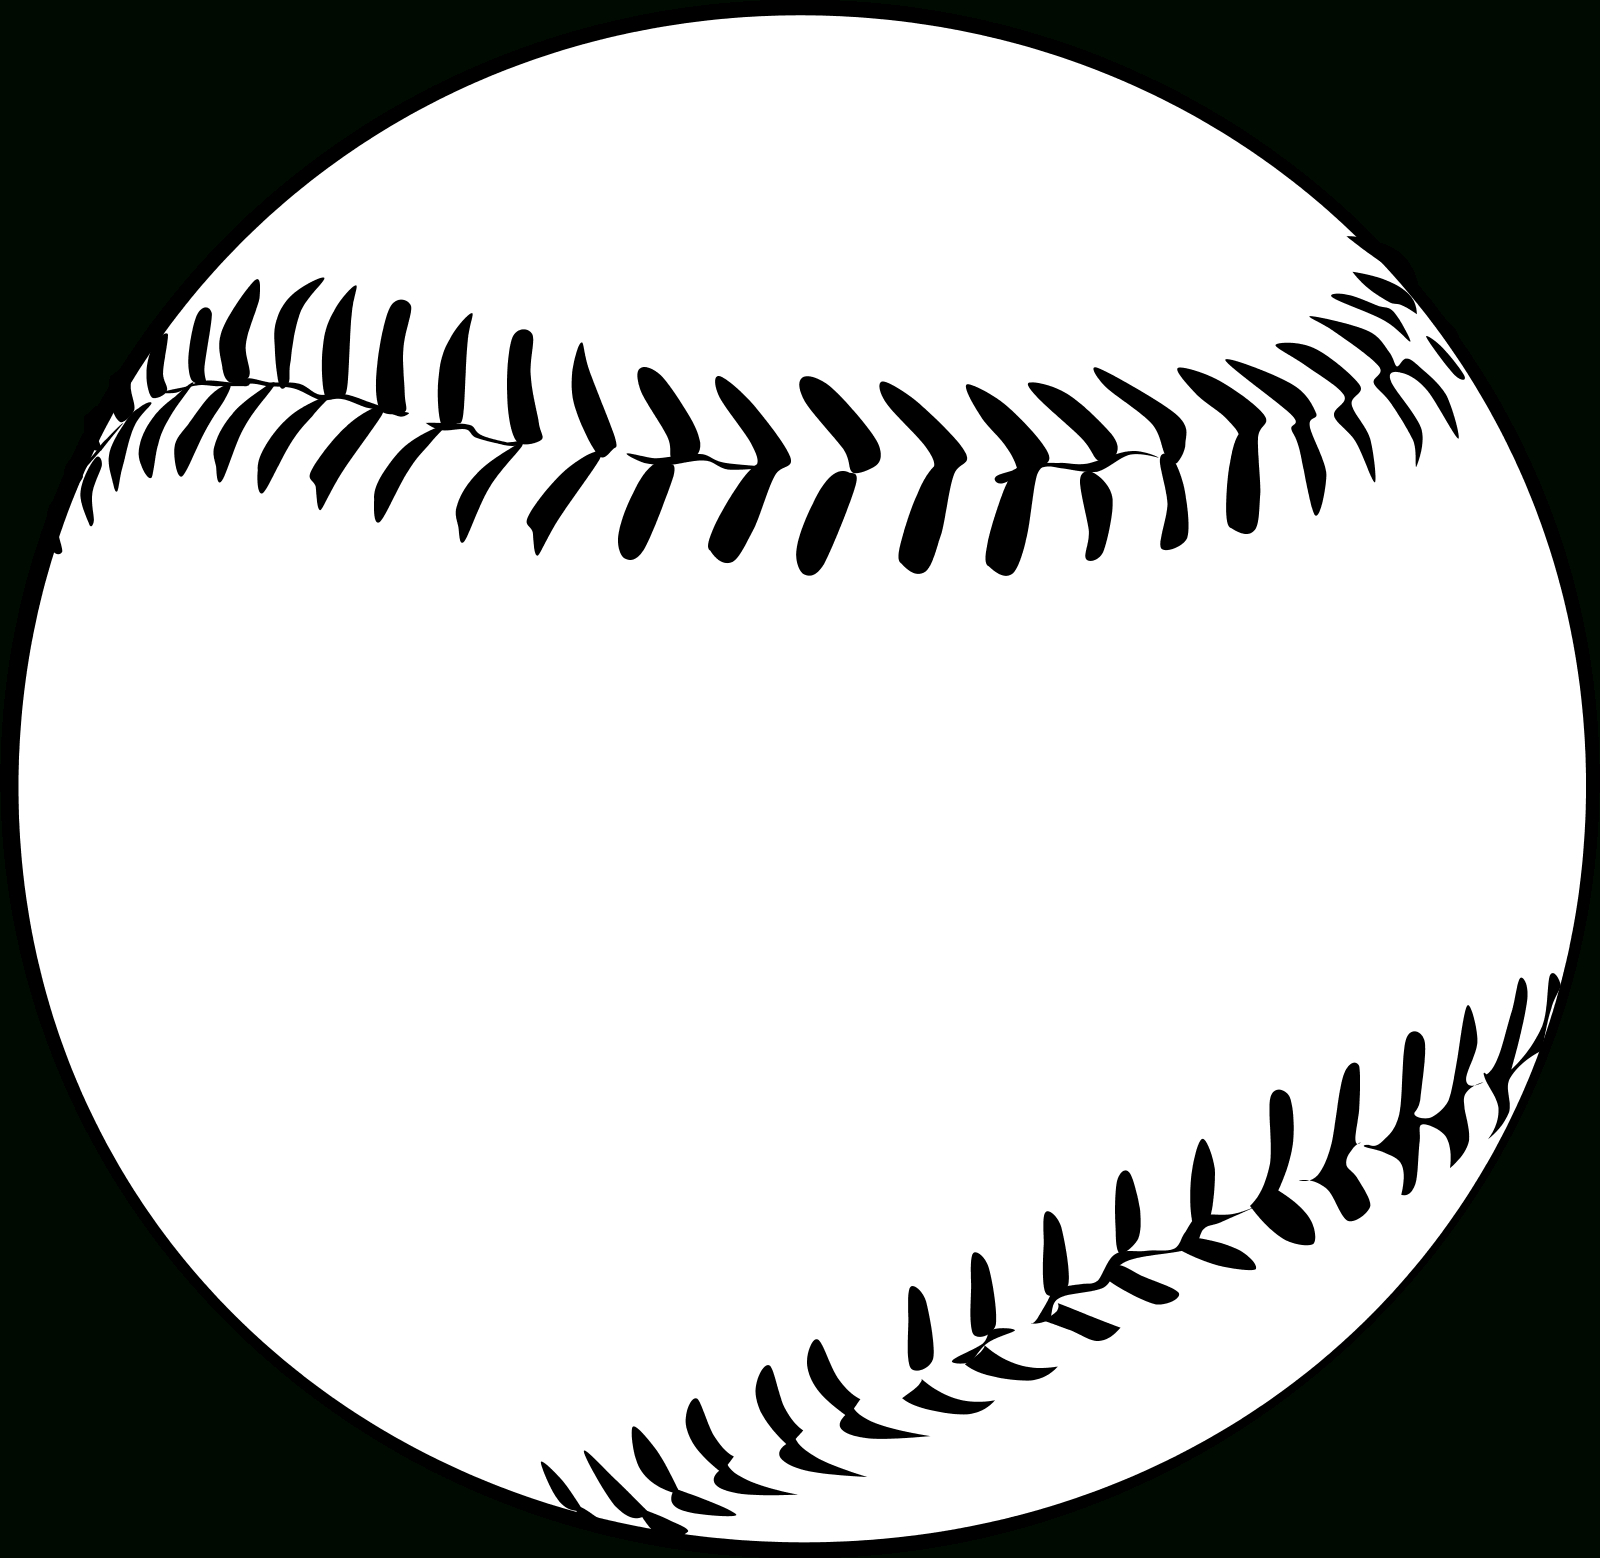 Free Printable Baseball Field, Download Free Clip Art, Free Clip Art - Free Printable Baseball Logos